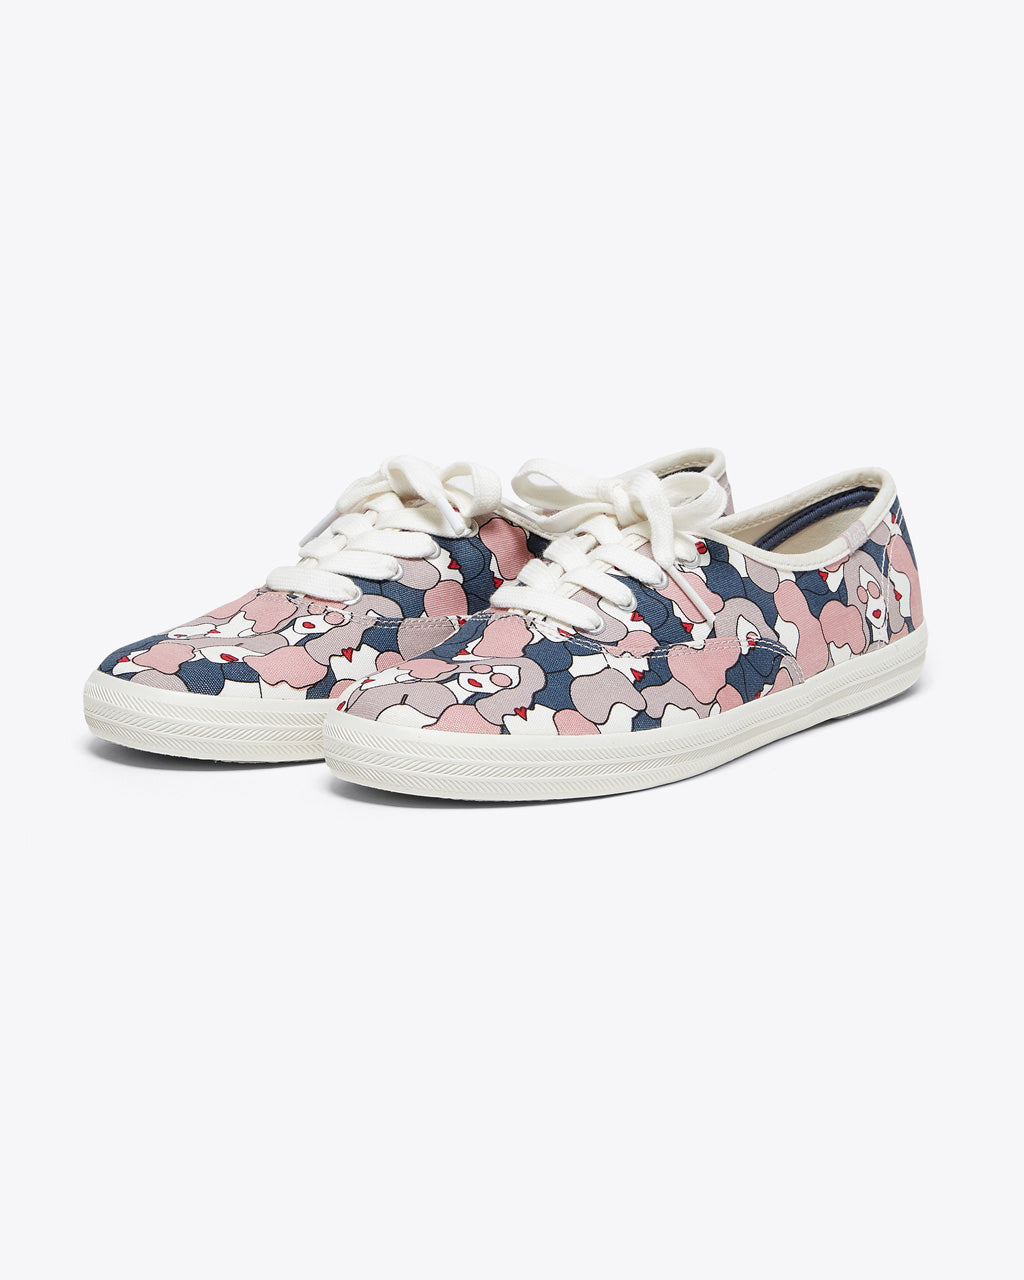 keds lace up champion shoes with cloud gray floral pattern